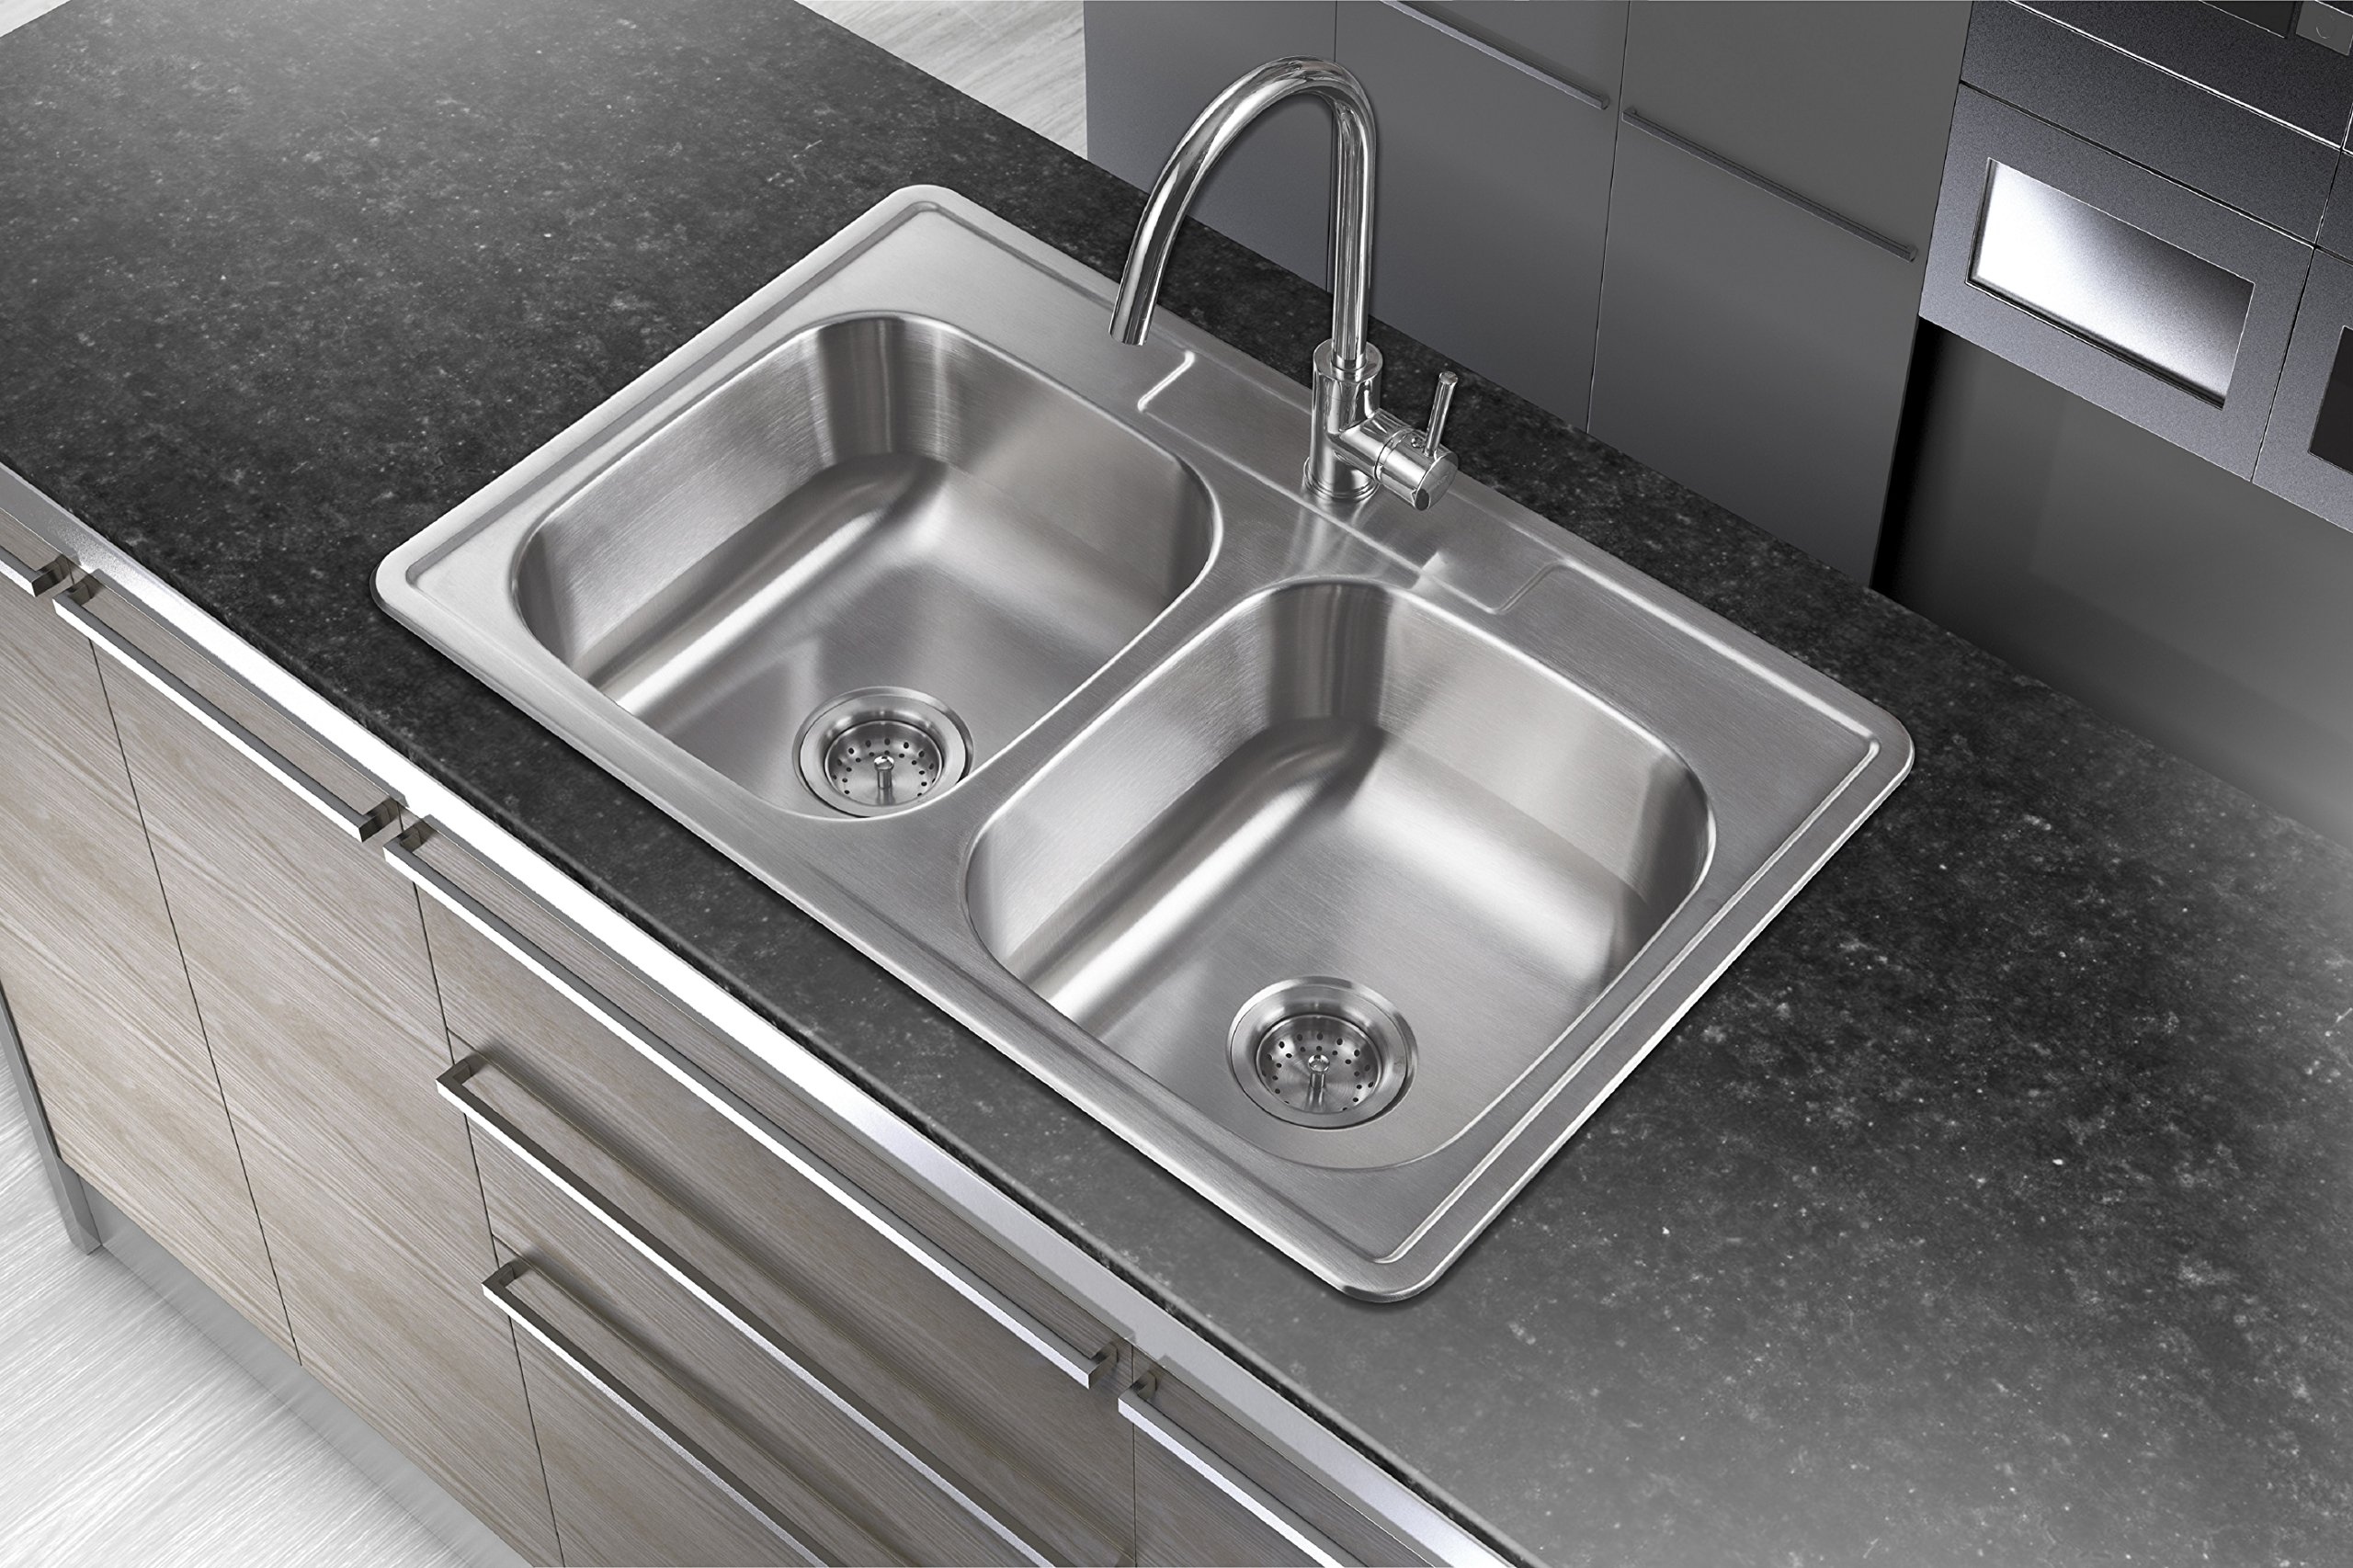 Winpro 33''x 22'' x 7'' Top Mount Double Bowl 304 Stainless Steel Kitchen Sink with 4 Faucet Holes by WinPro (Image #2)